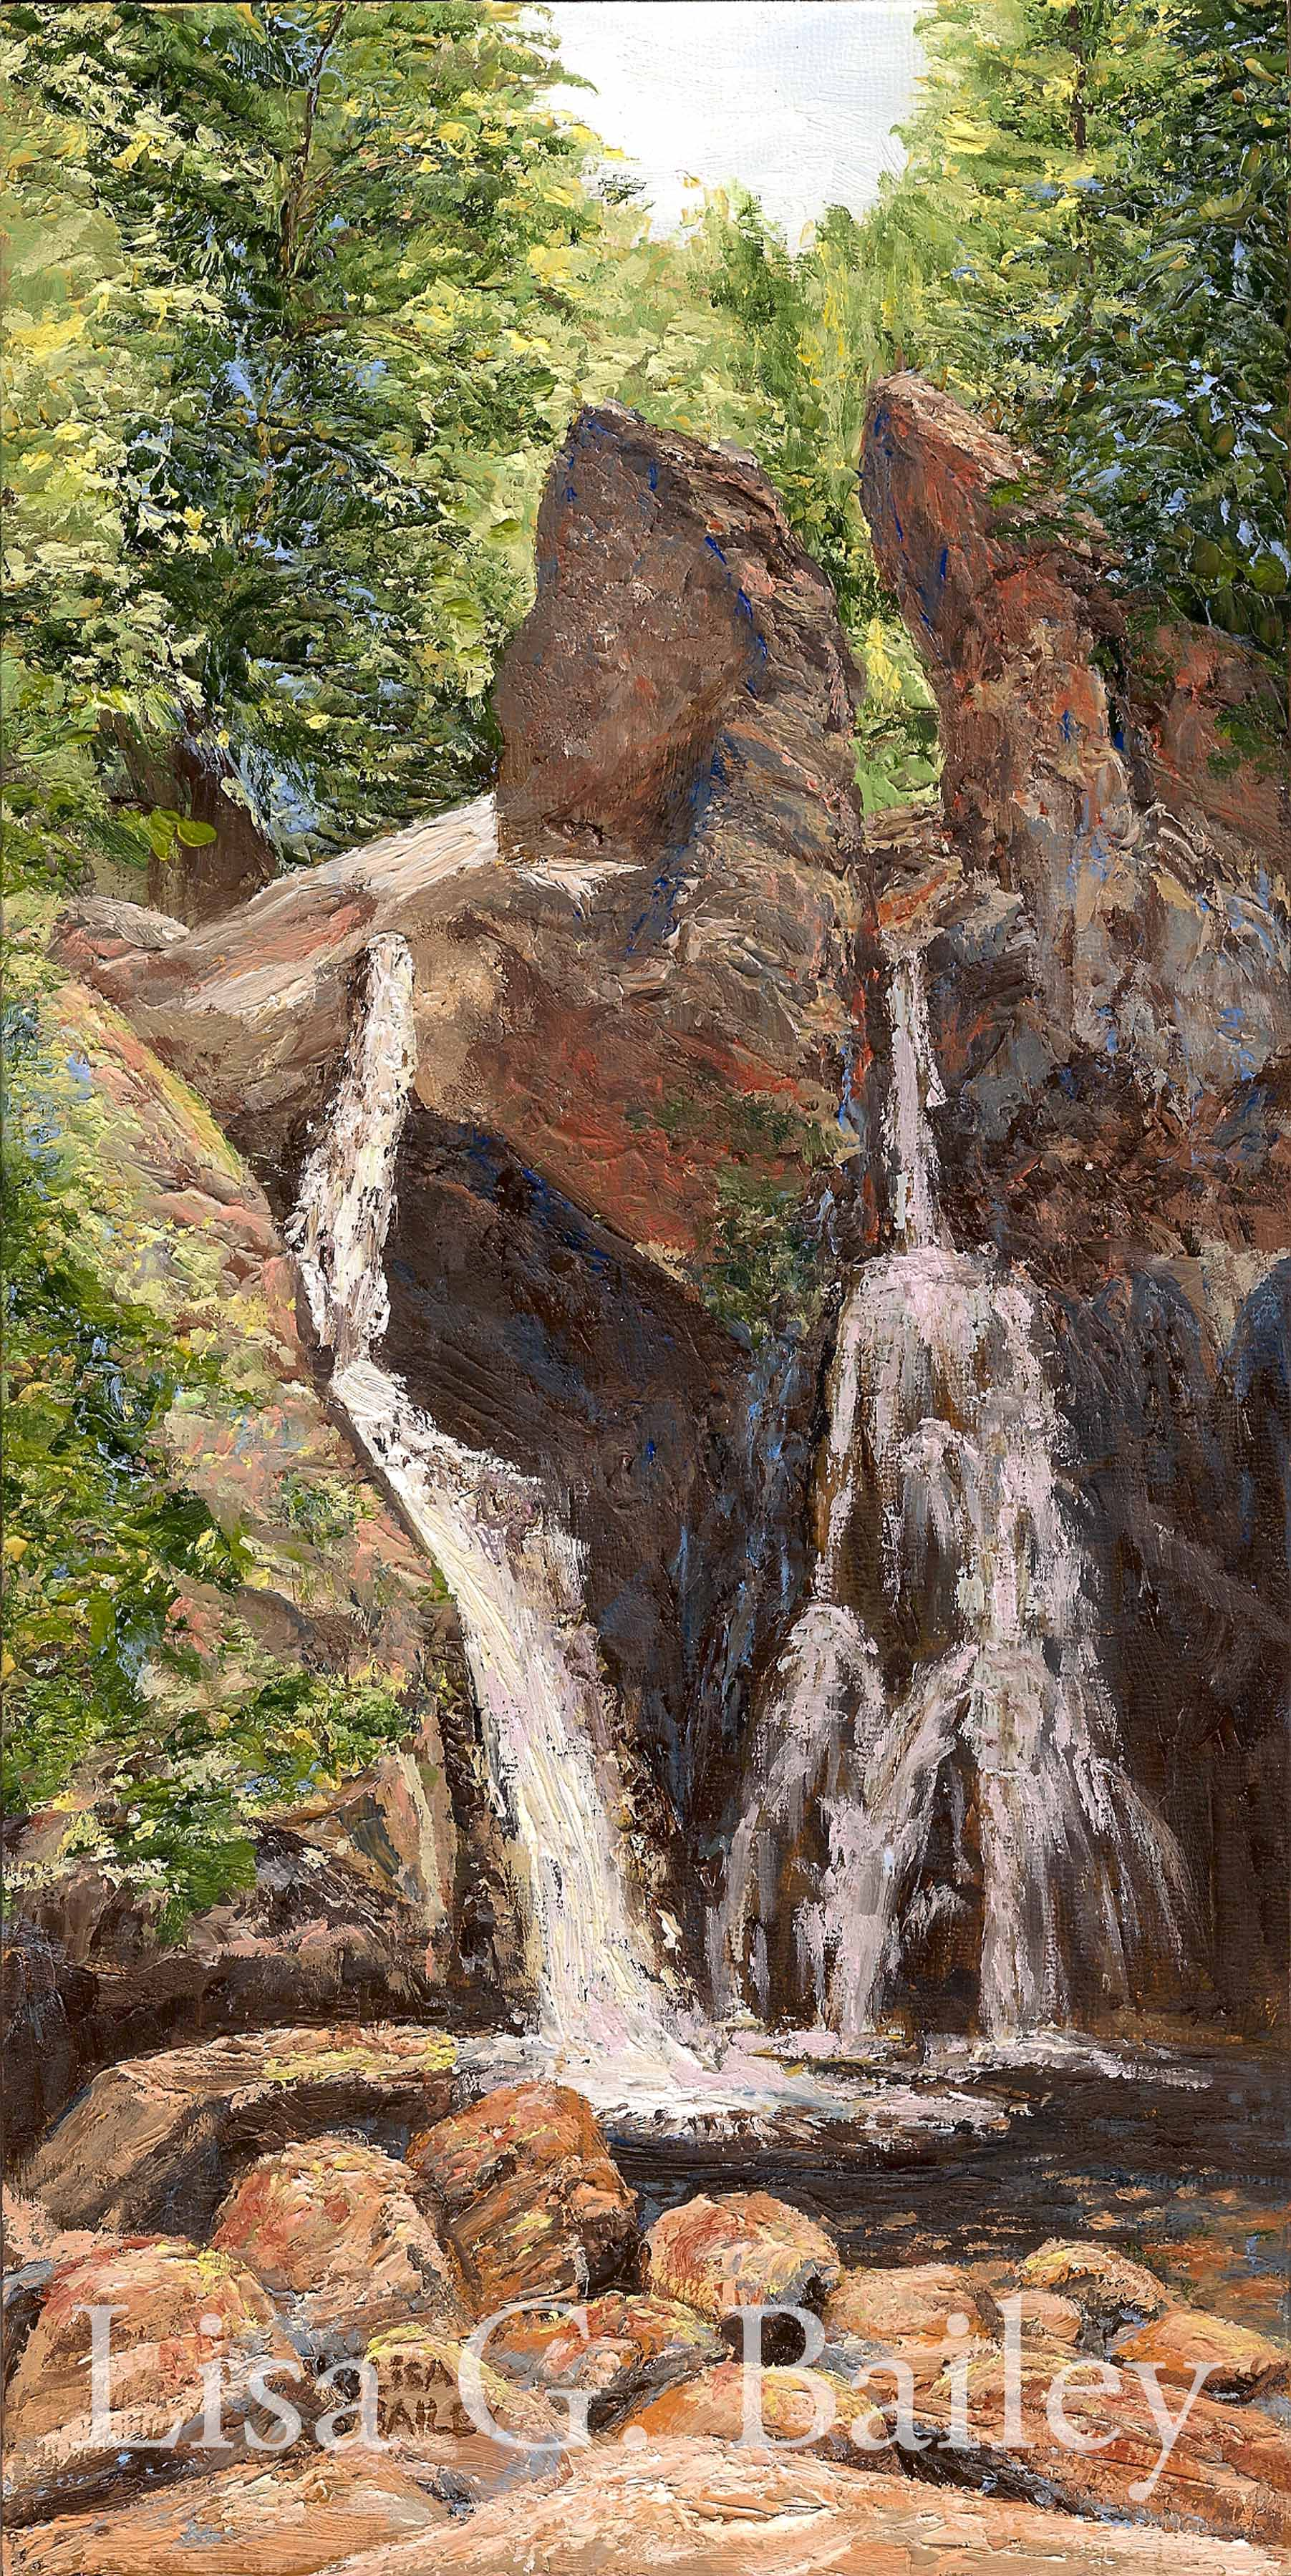 Lisa G Bailey. Bash Fish Falls. oil